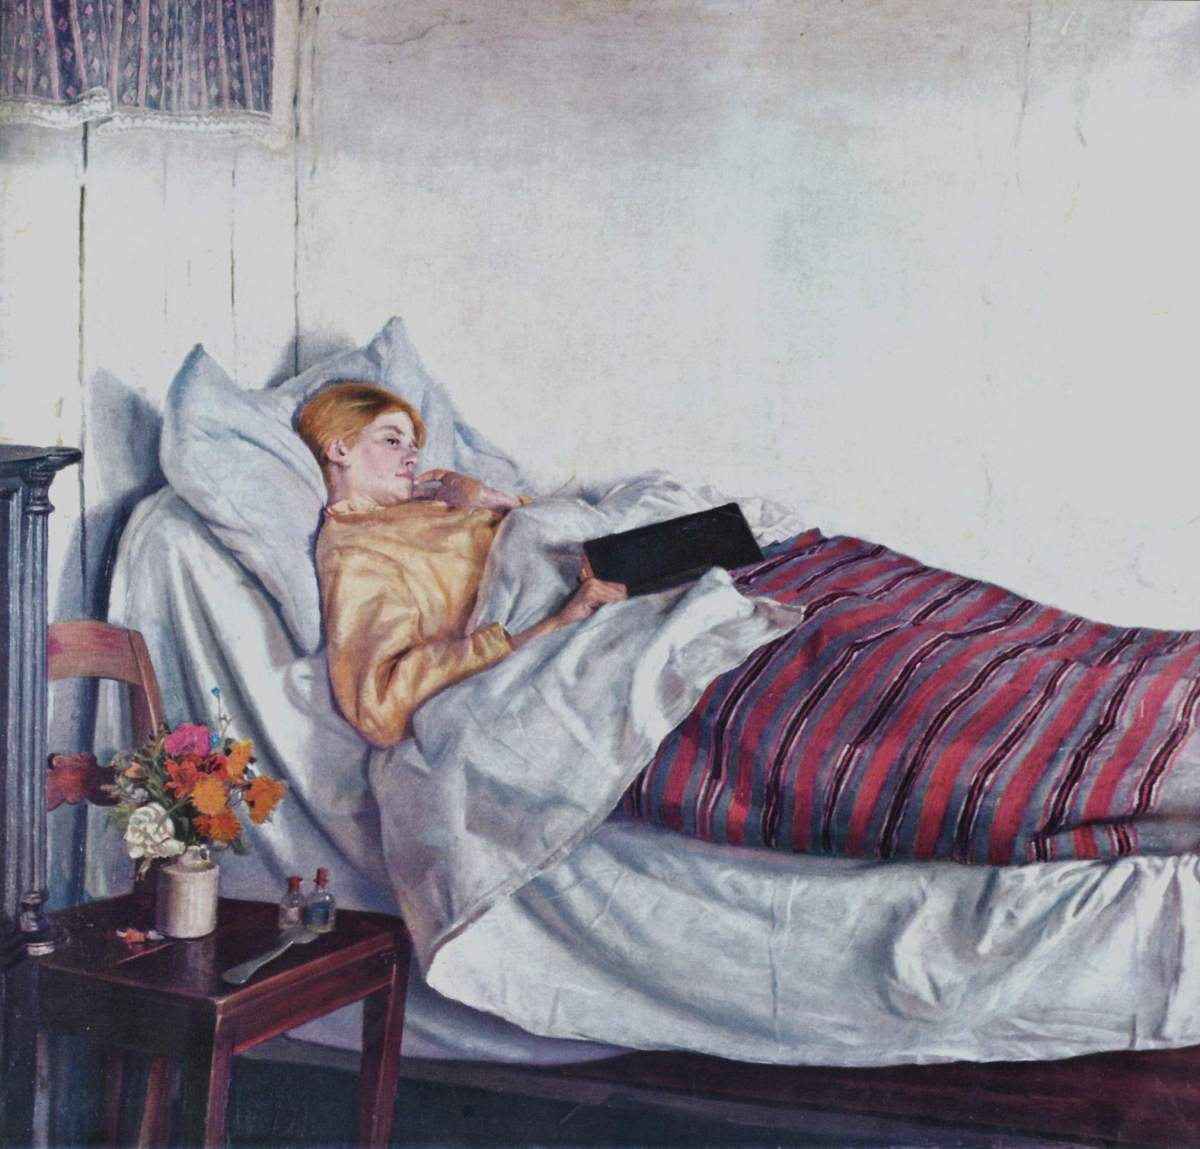 A young women laying in a bed, reading a book, with medicine vials on her bedside table